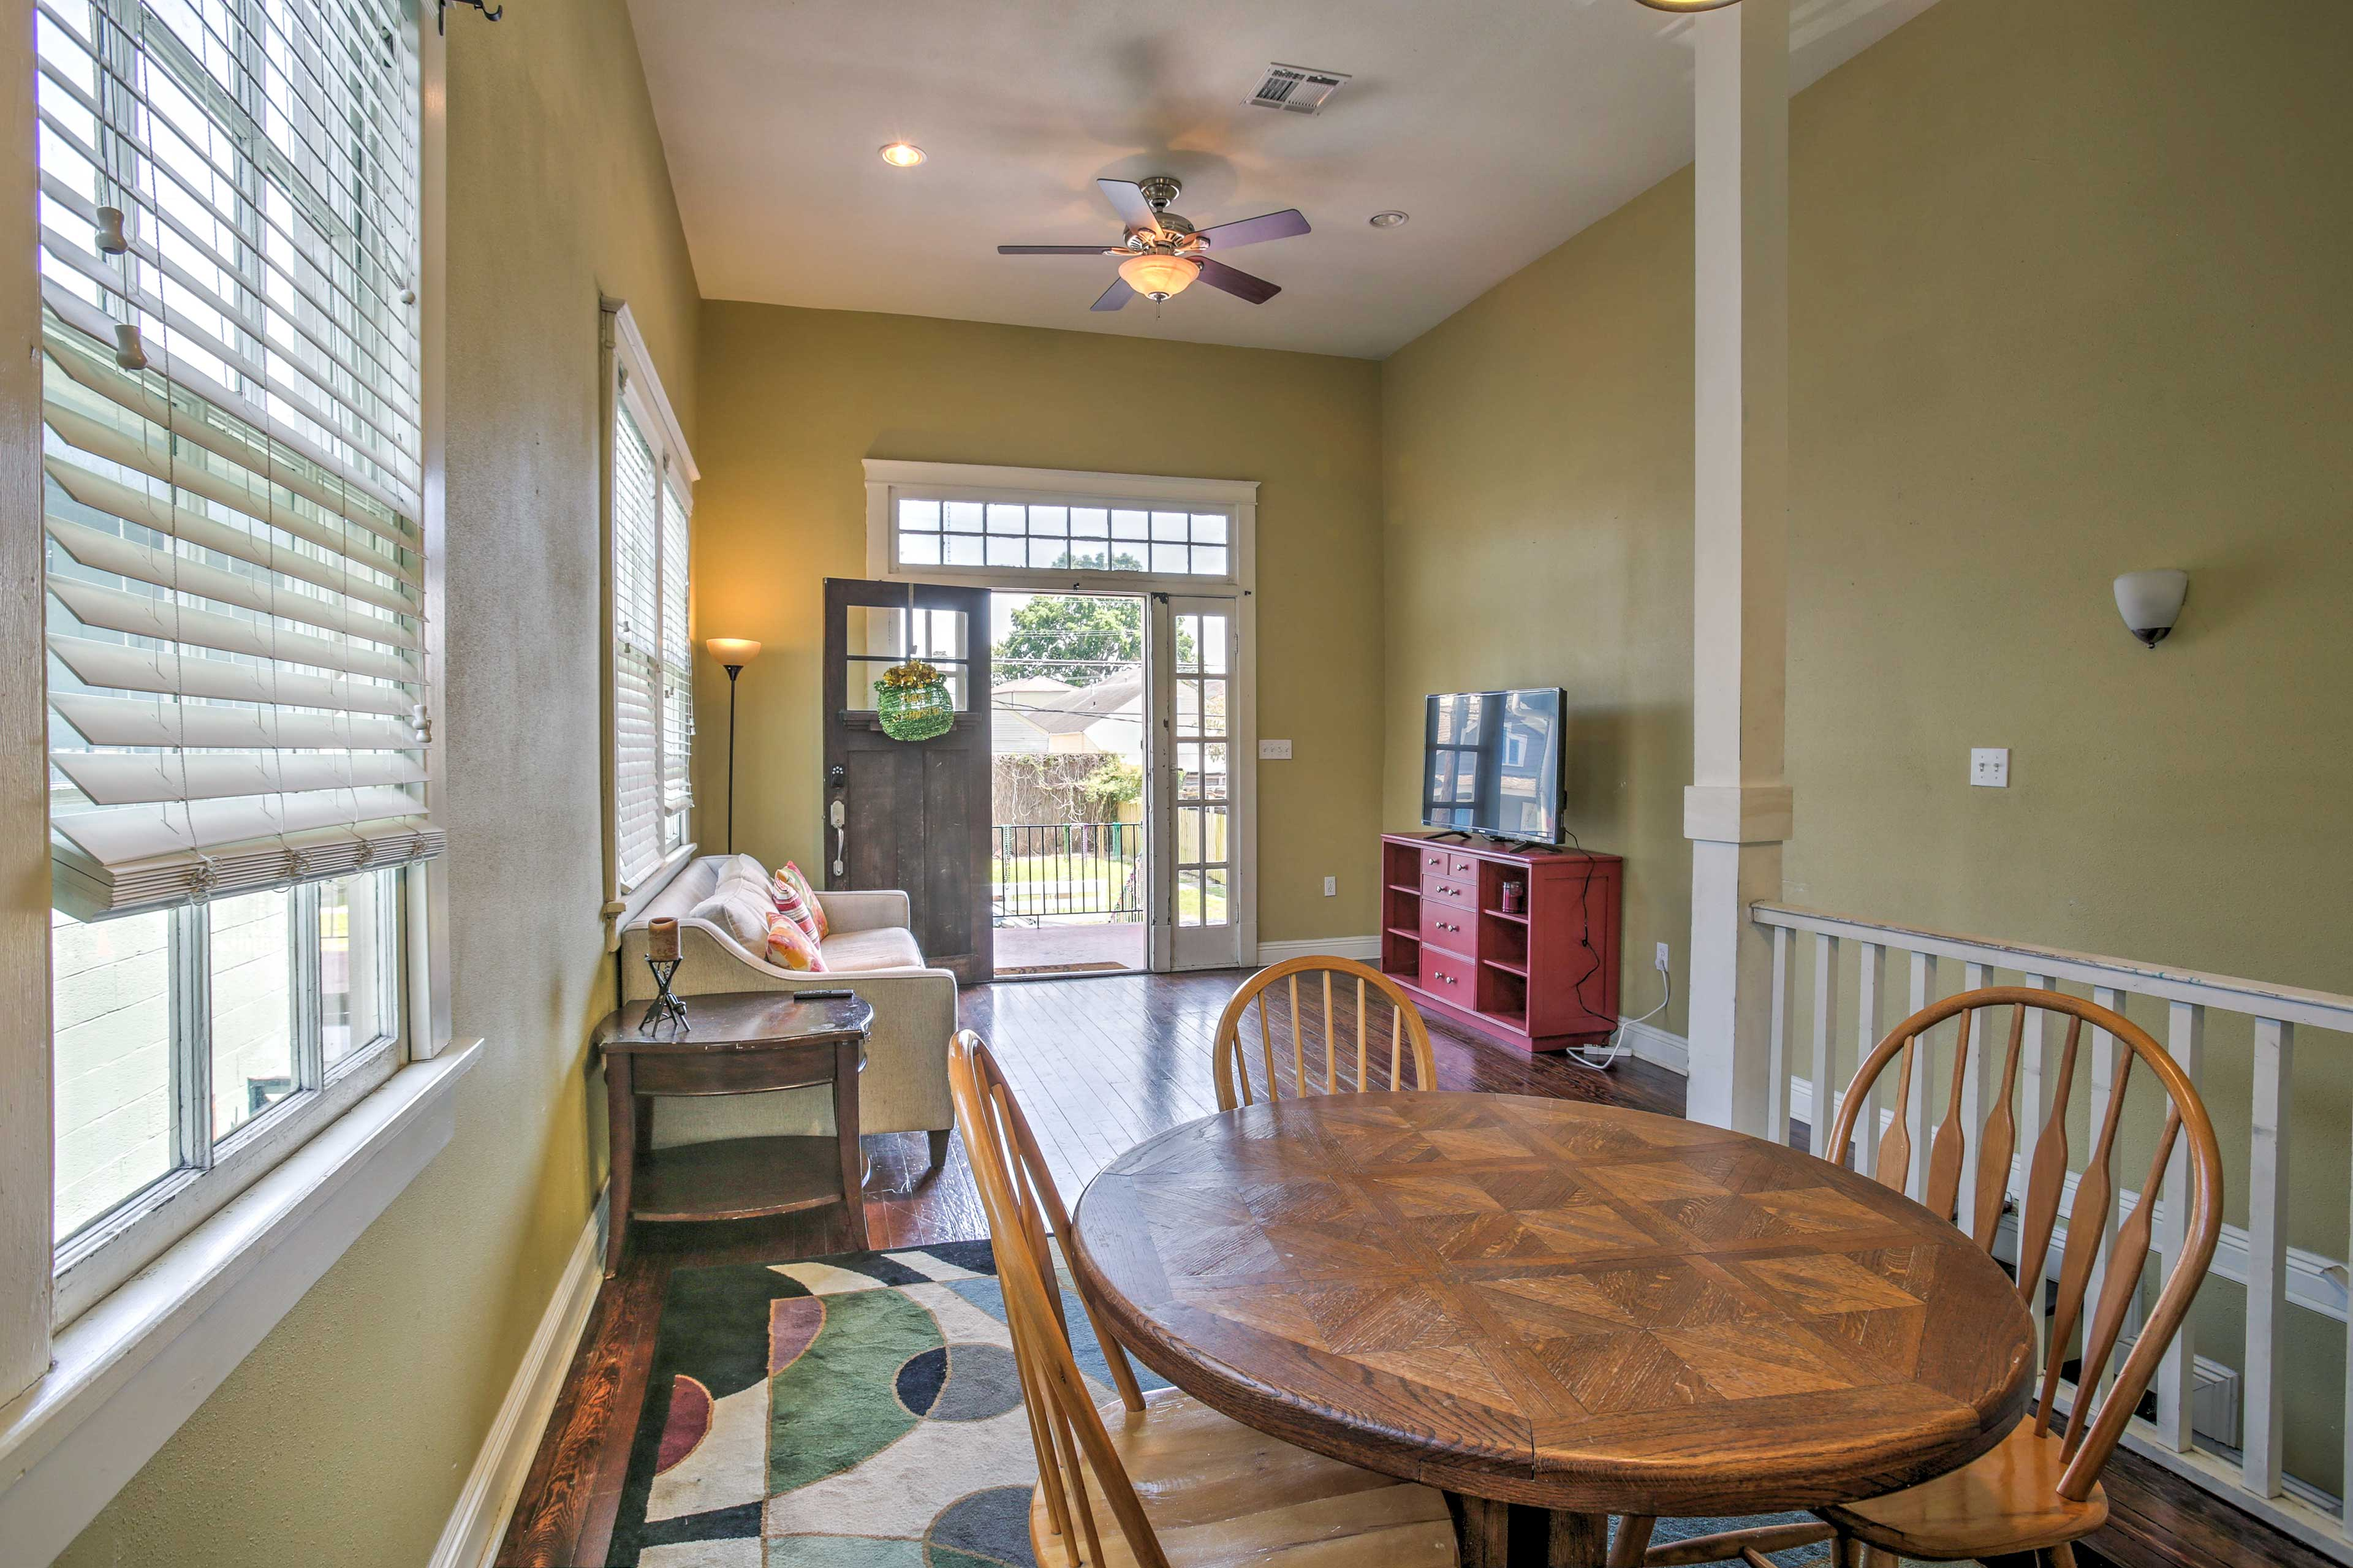 The living area has an open floor plan where your group can easily gather.